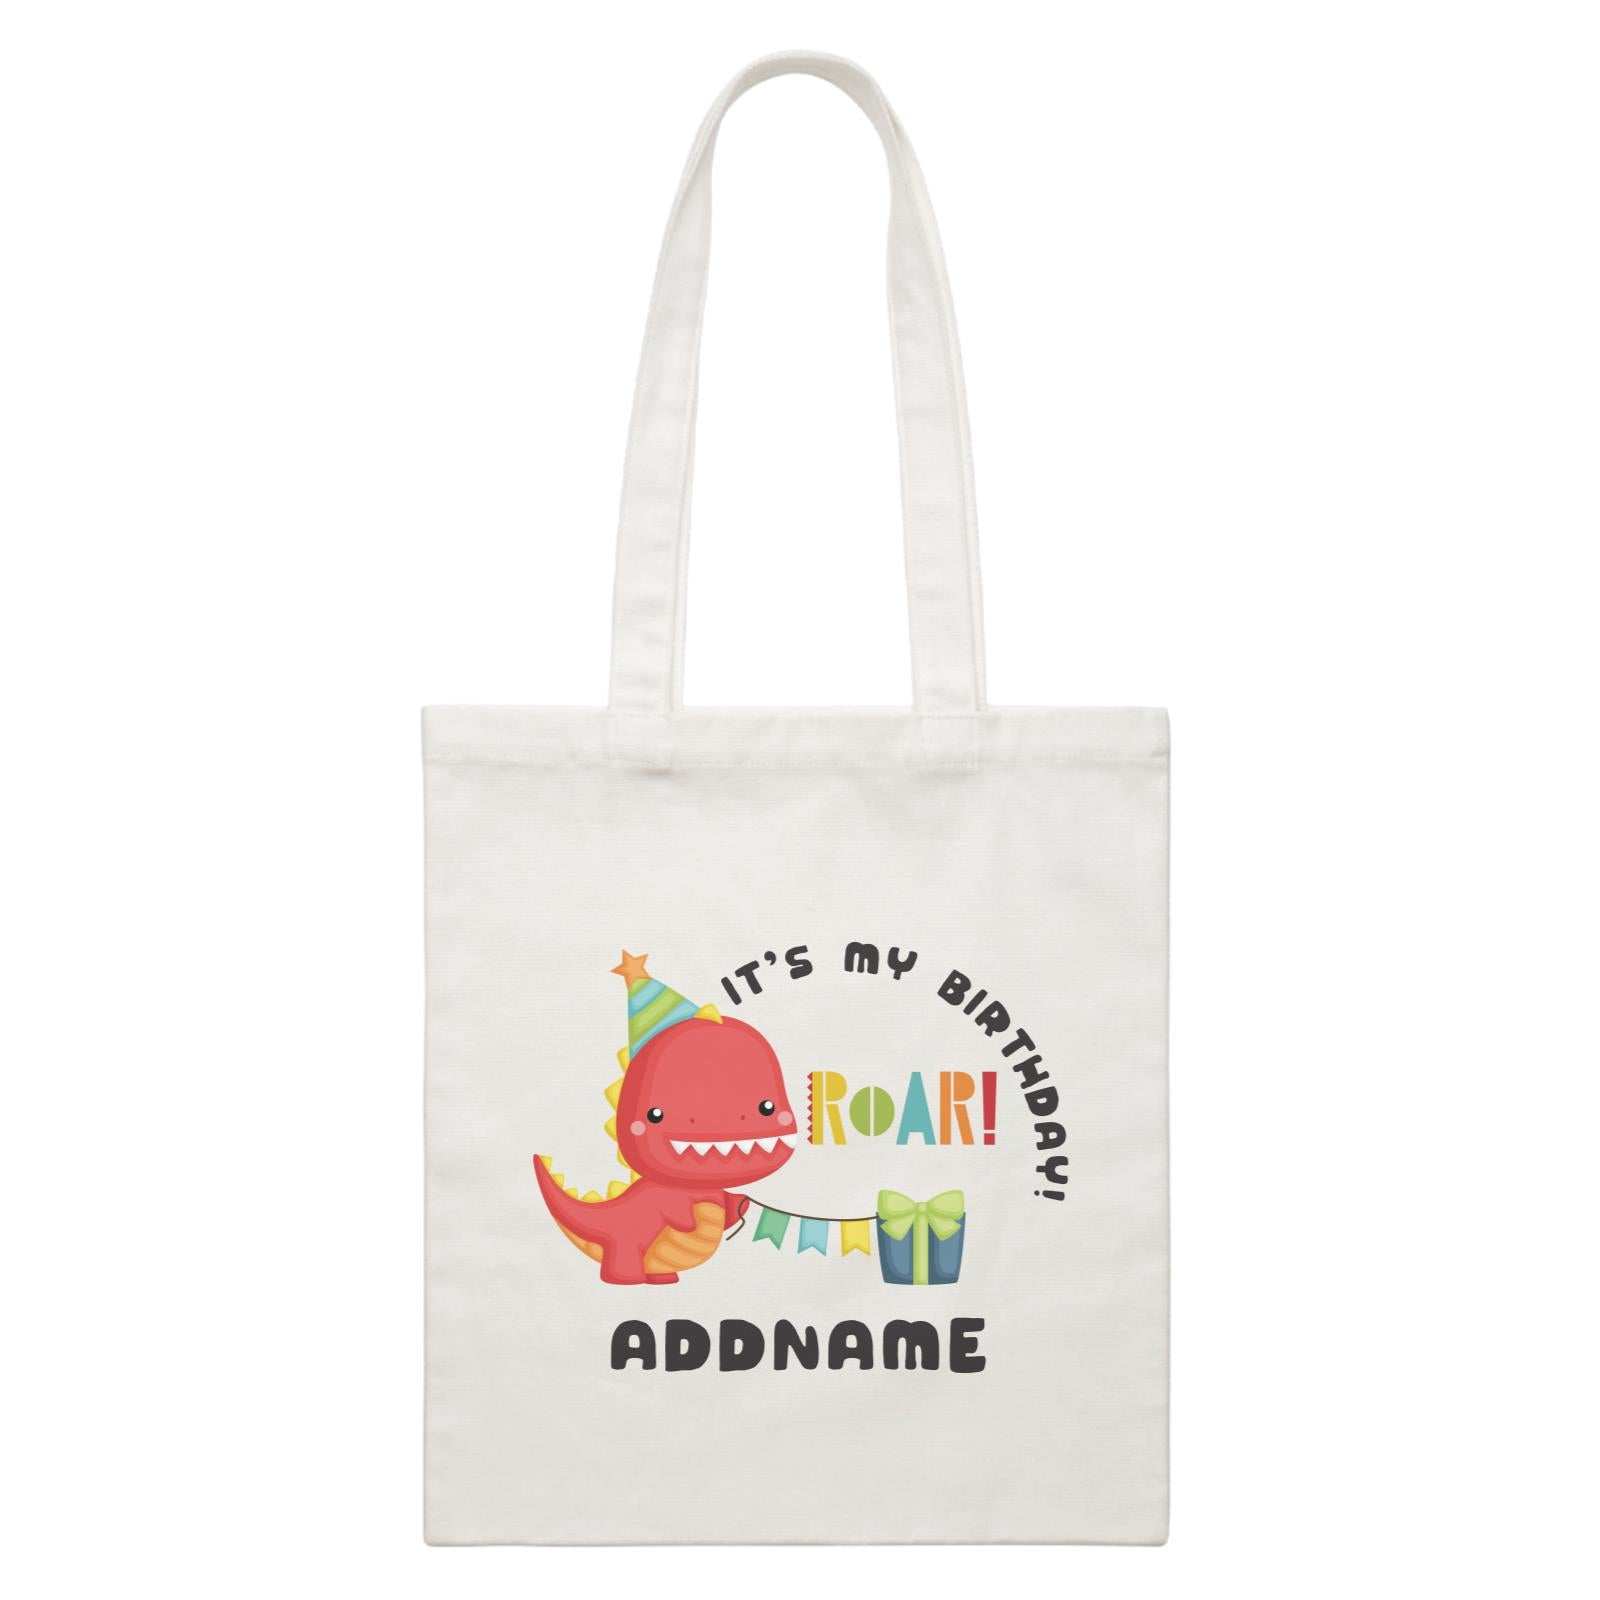 Birthday Dinosaur Happy Red Rex Wearing Party Hat It's My Birthday Addname White Canvas Bag